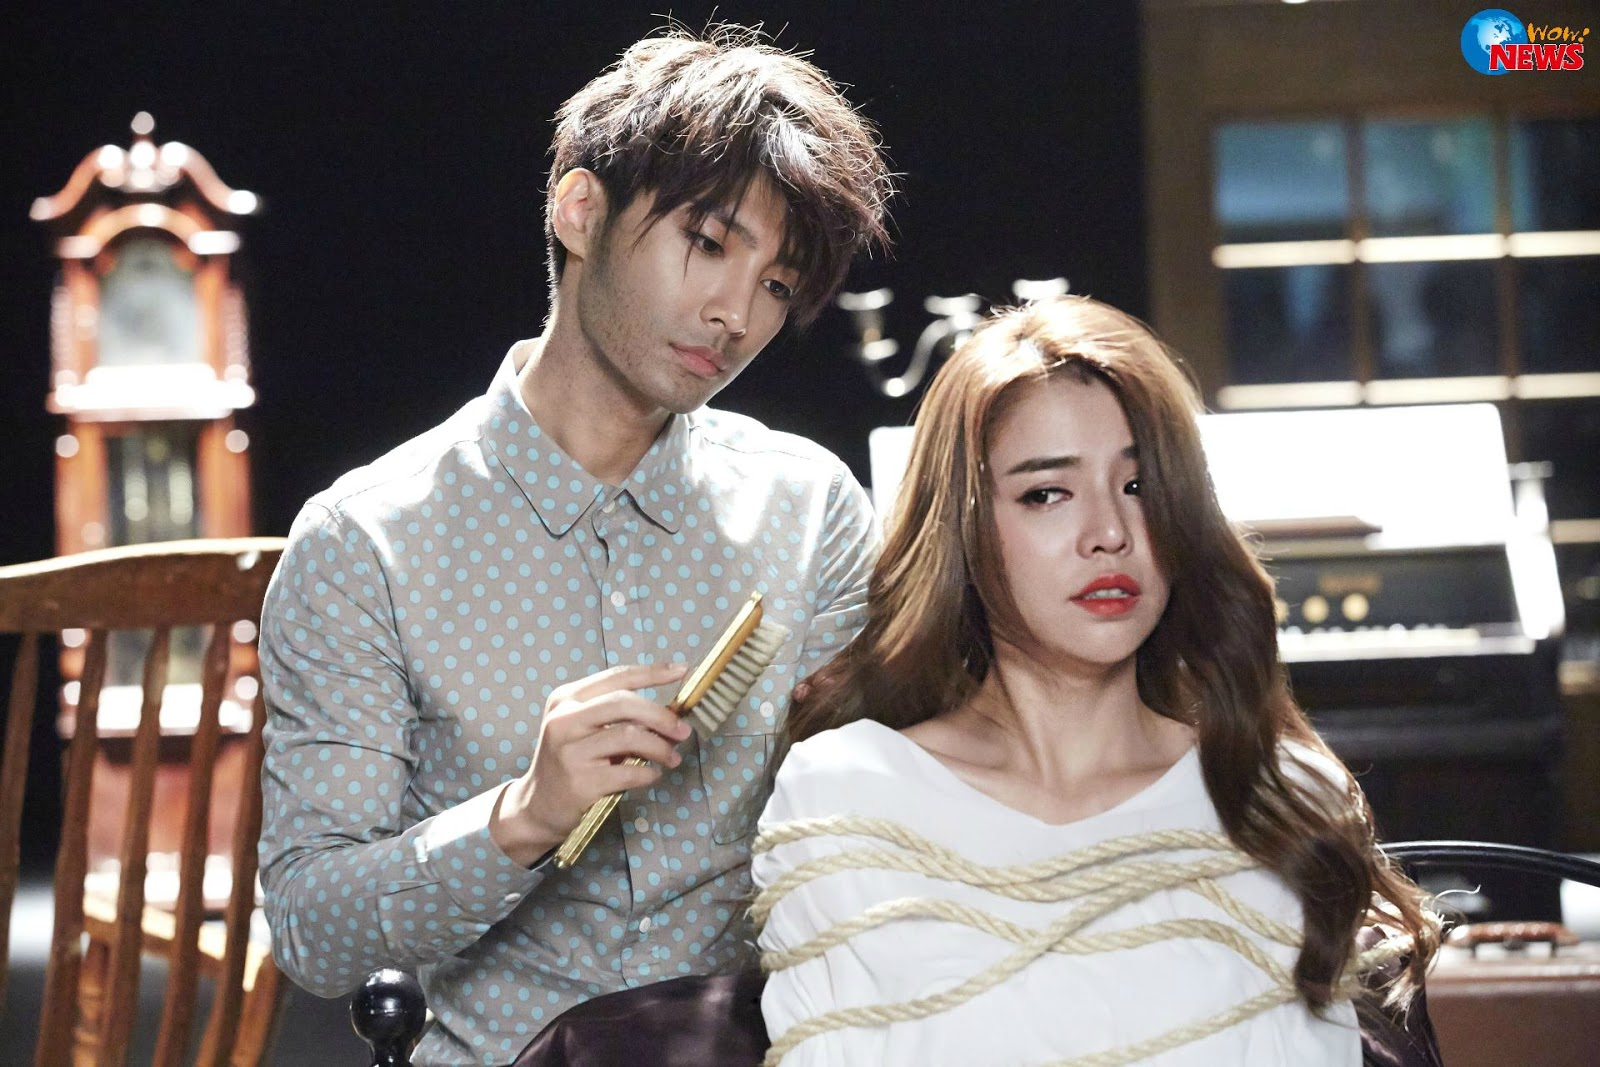 Aaron Yan Fall In Love With Me Wallpaper Best Drama Couple 3 Lucia Obsessions